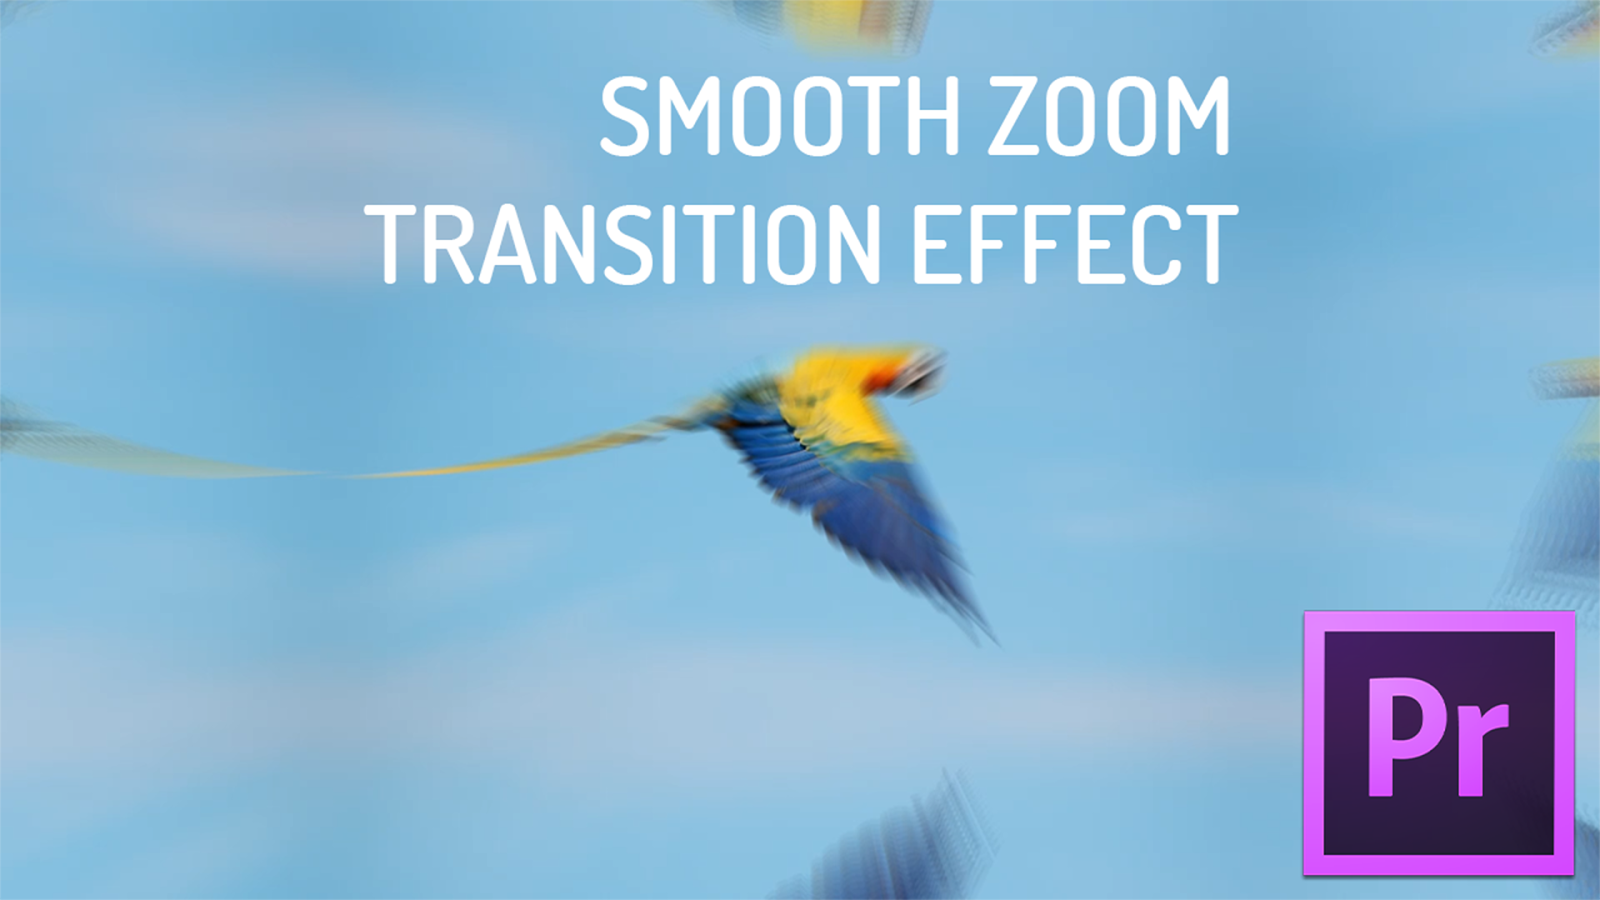 Adobe Premiere Pro CC Smooth Zoom Transition Effect Tutorial